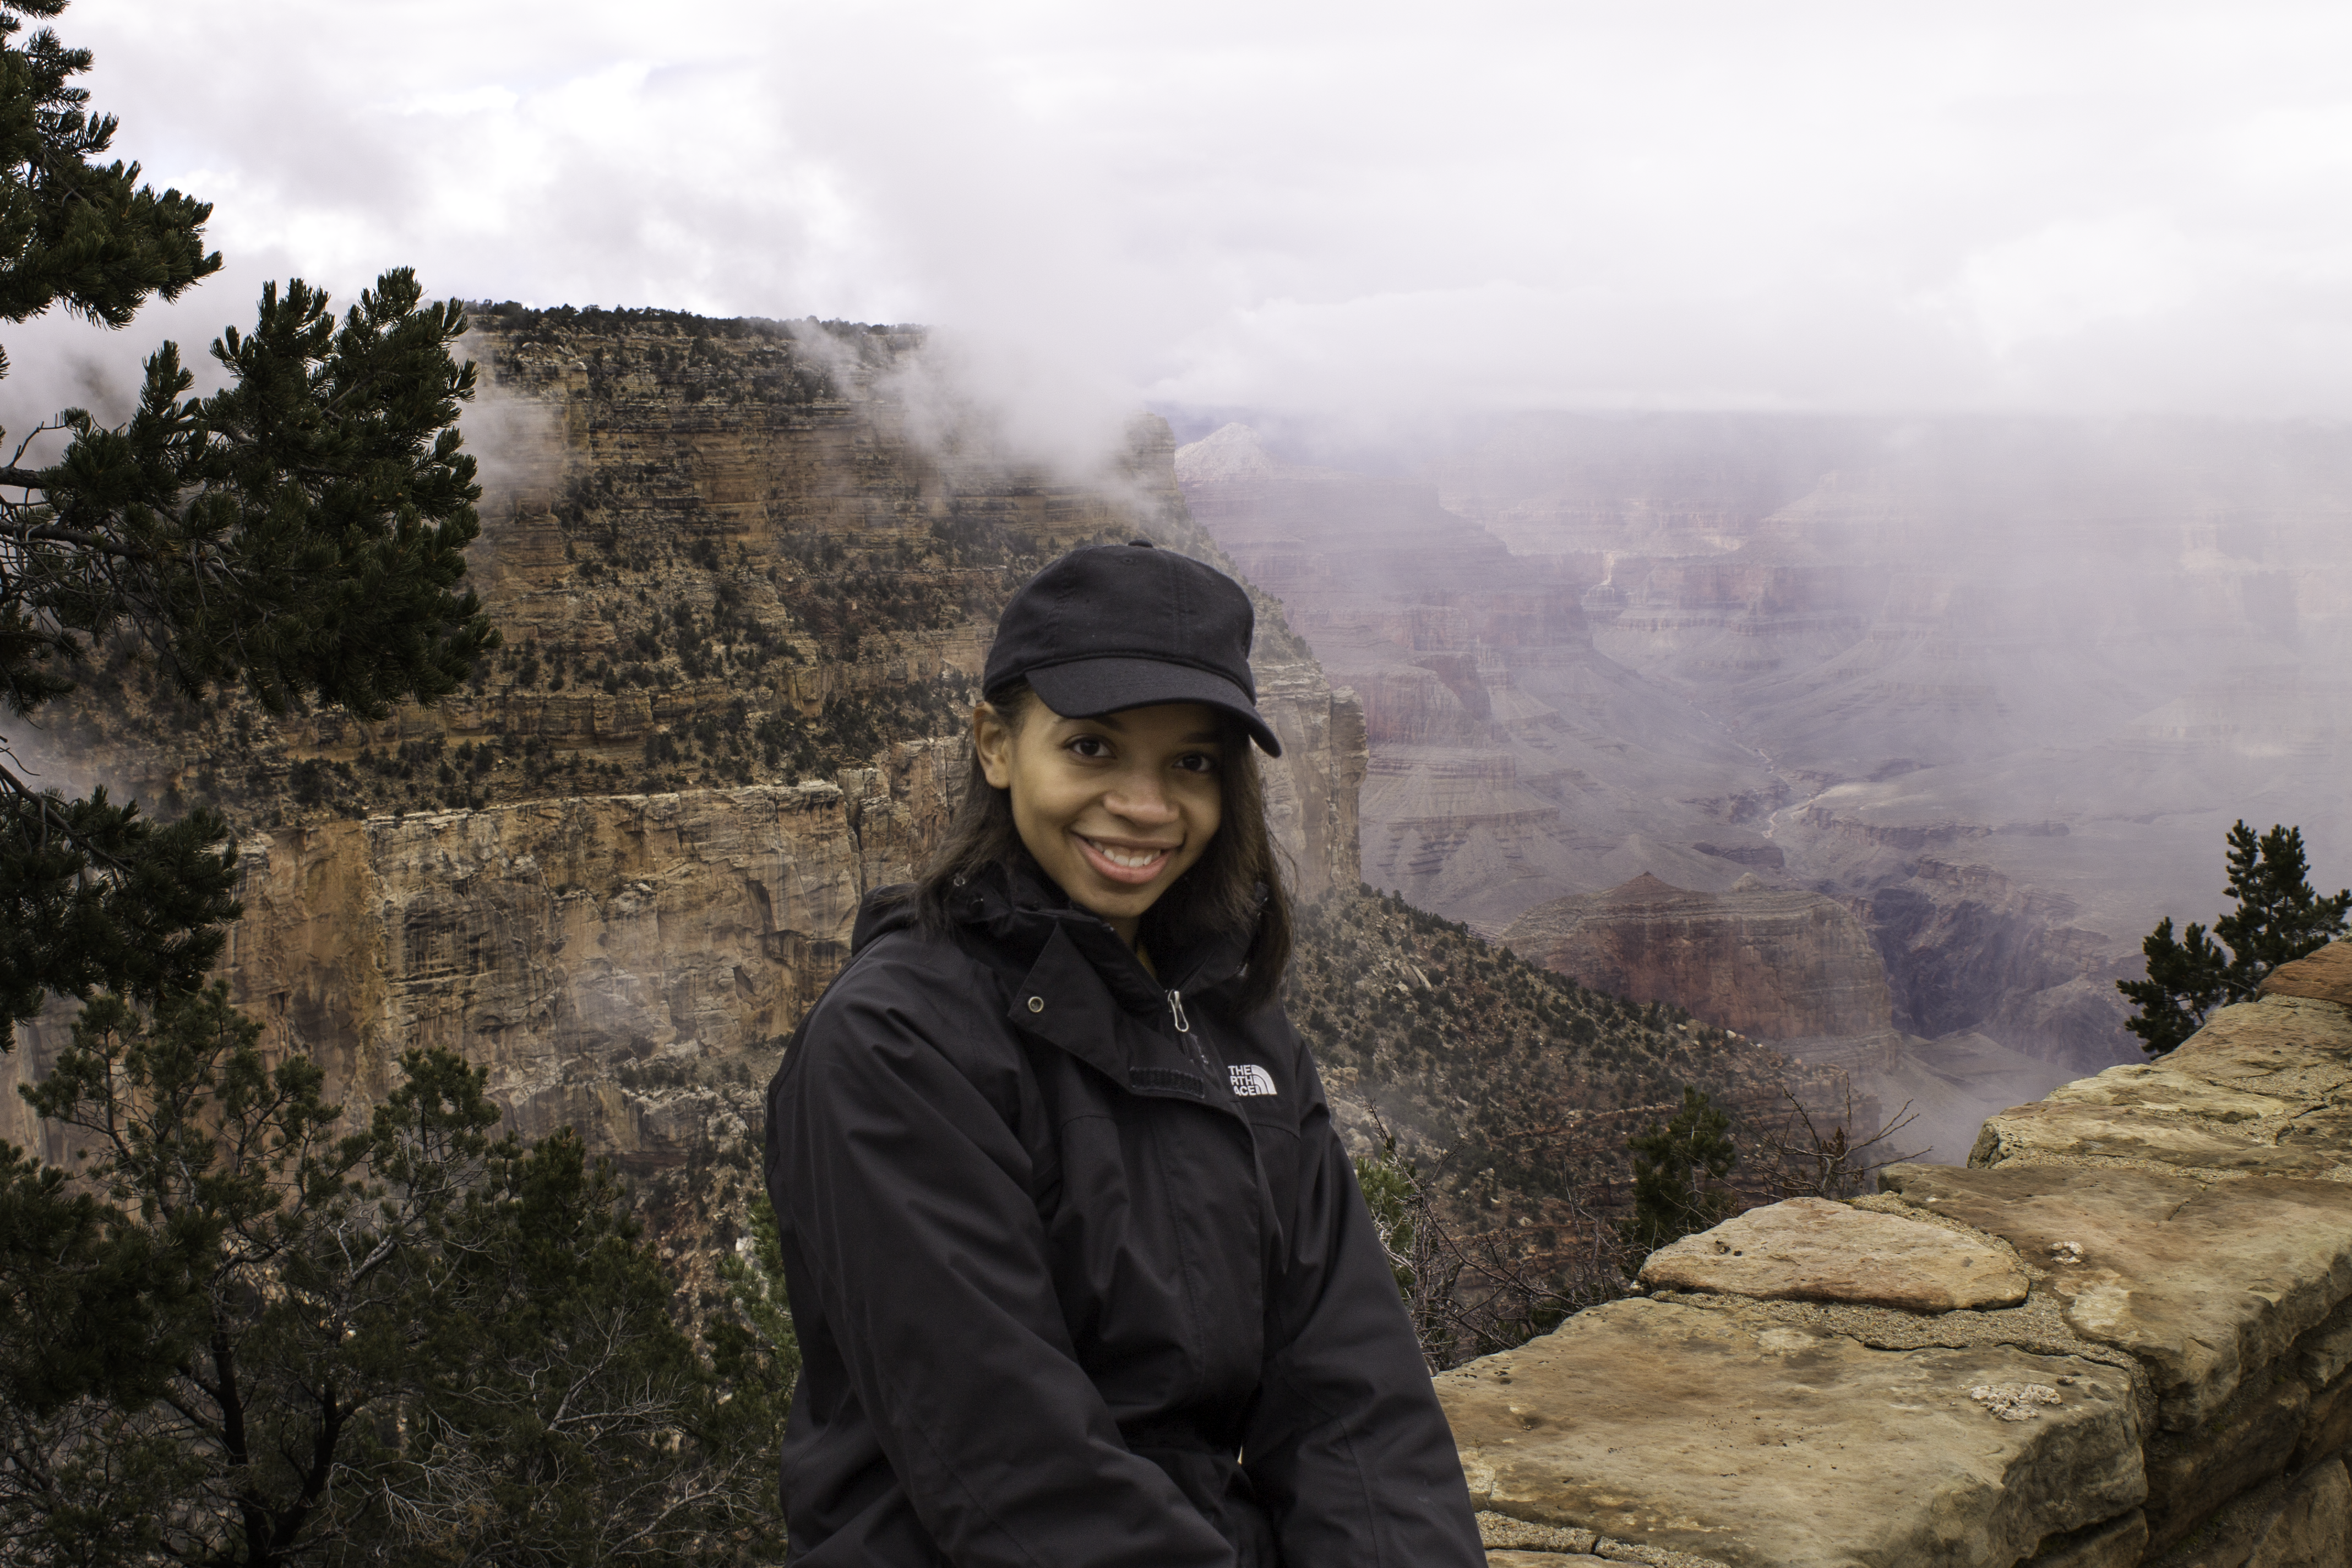 So, last March I went to the Grand Canyon.